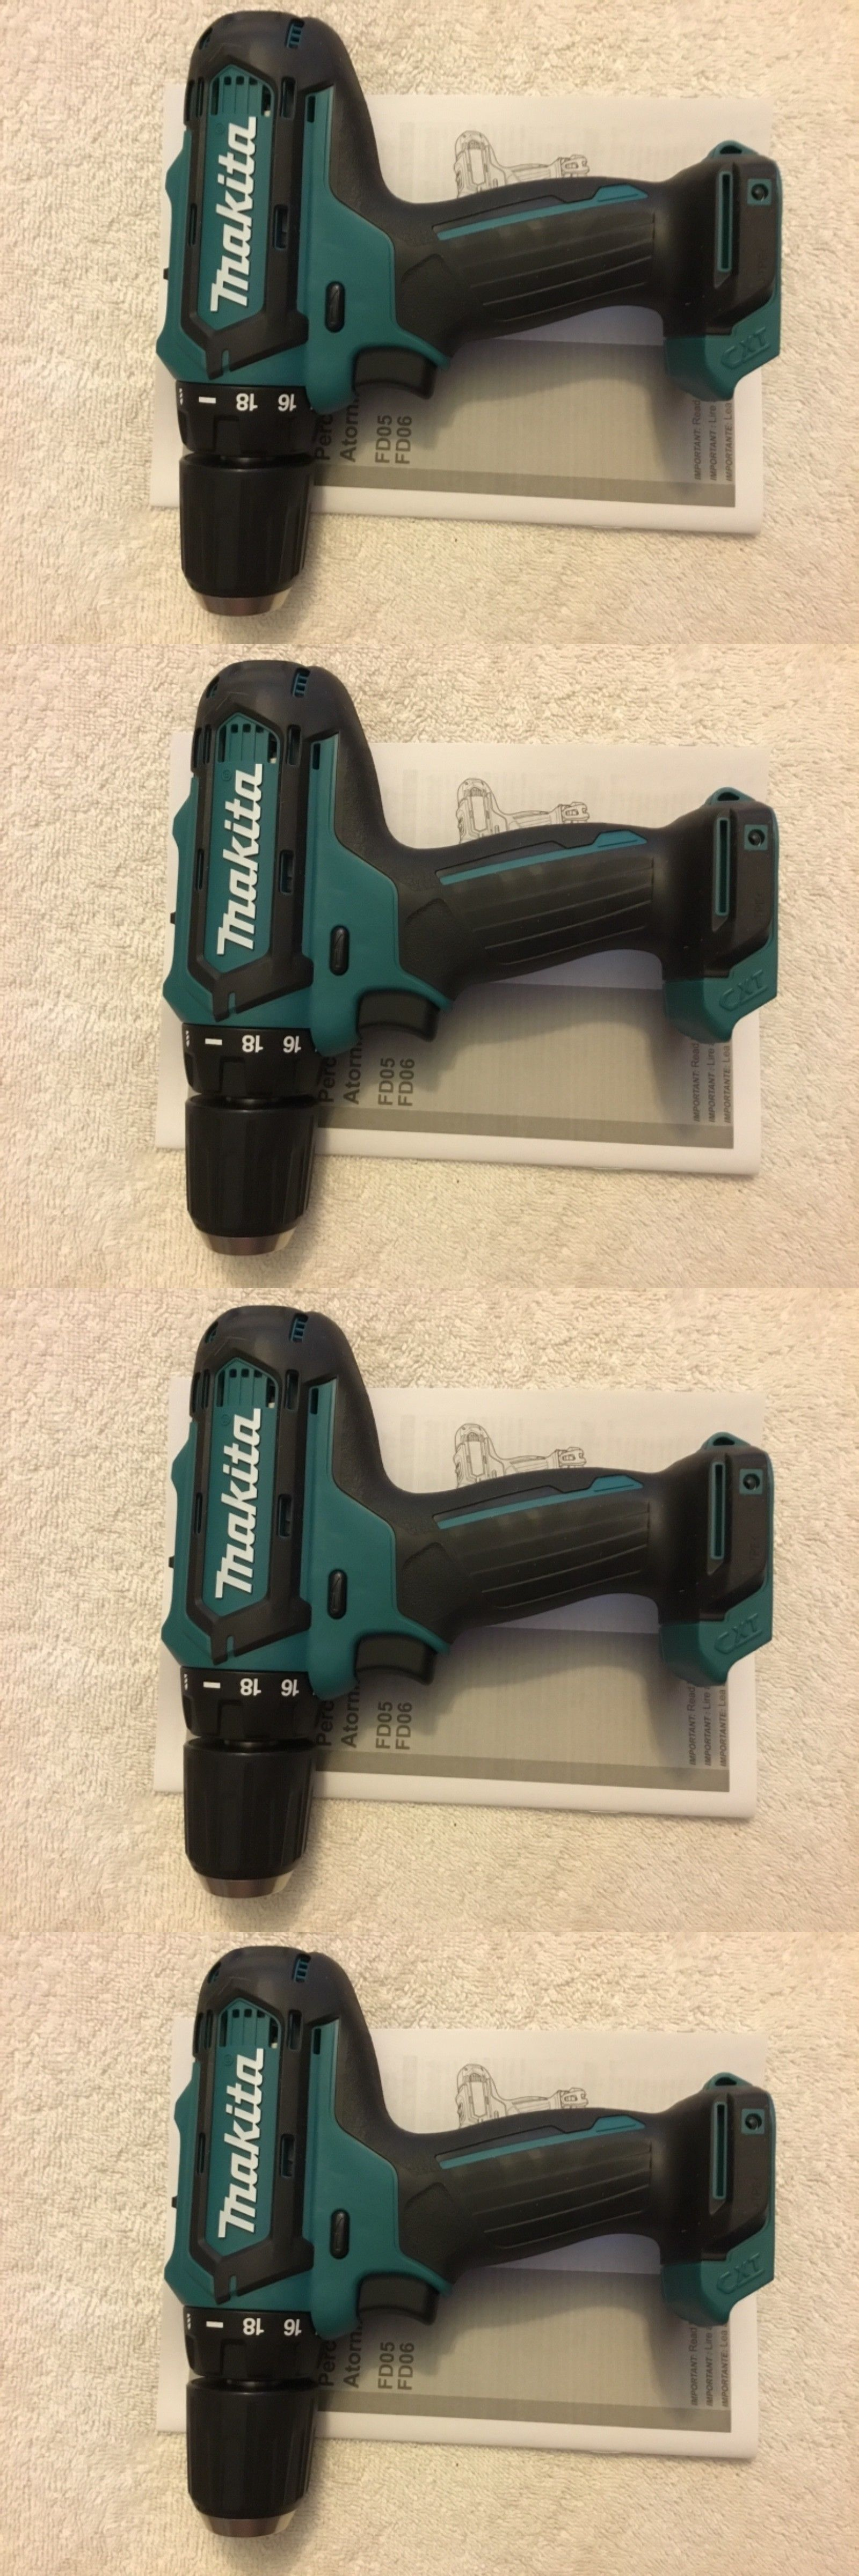 Cordless Drills 184655 New Makita Fd05z 12v 12 Volt Max Cxt 3 8 2 Speed Drill Driver Li Ion Buy It Now Only 28 59 On Ebay Drill Makita Cordless Drills